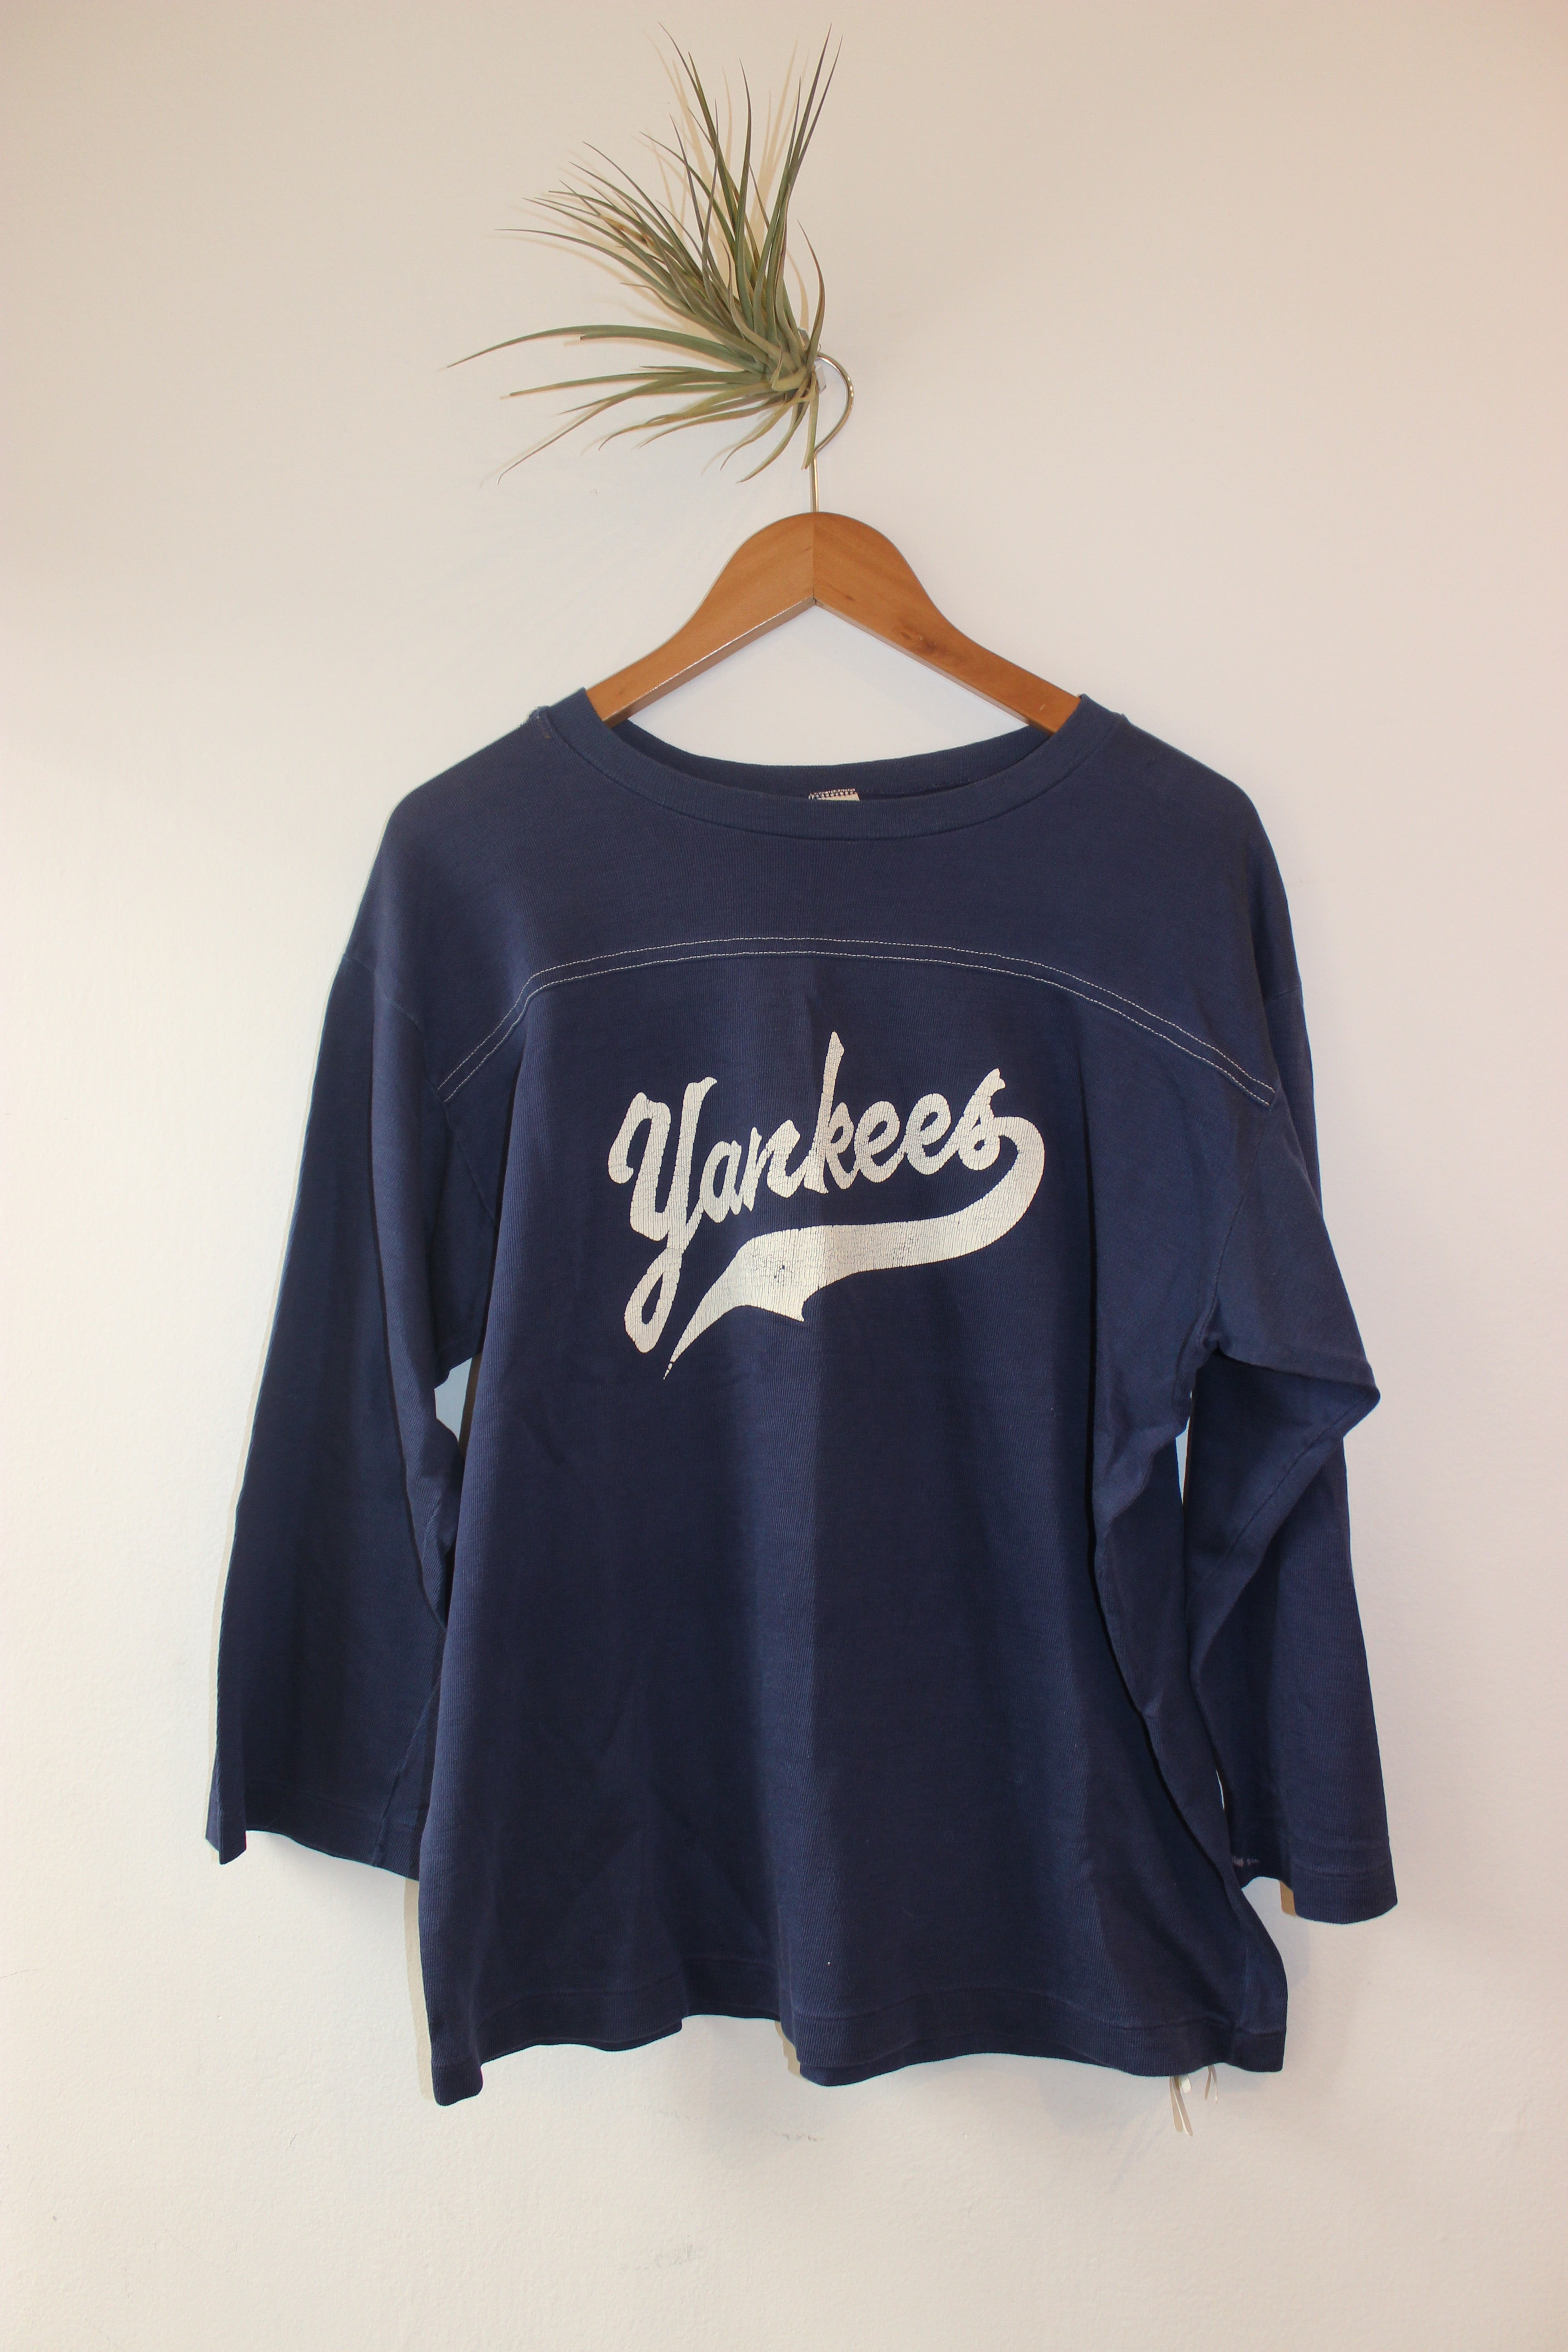 Vintage Yankees Long Sleeve Tee